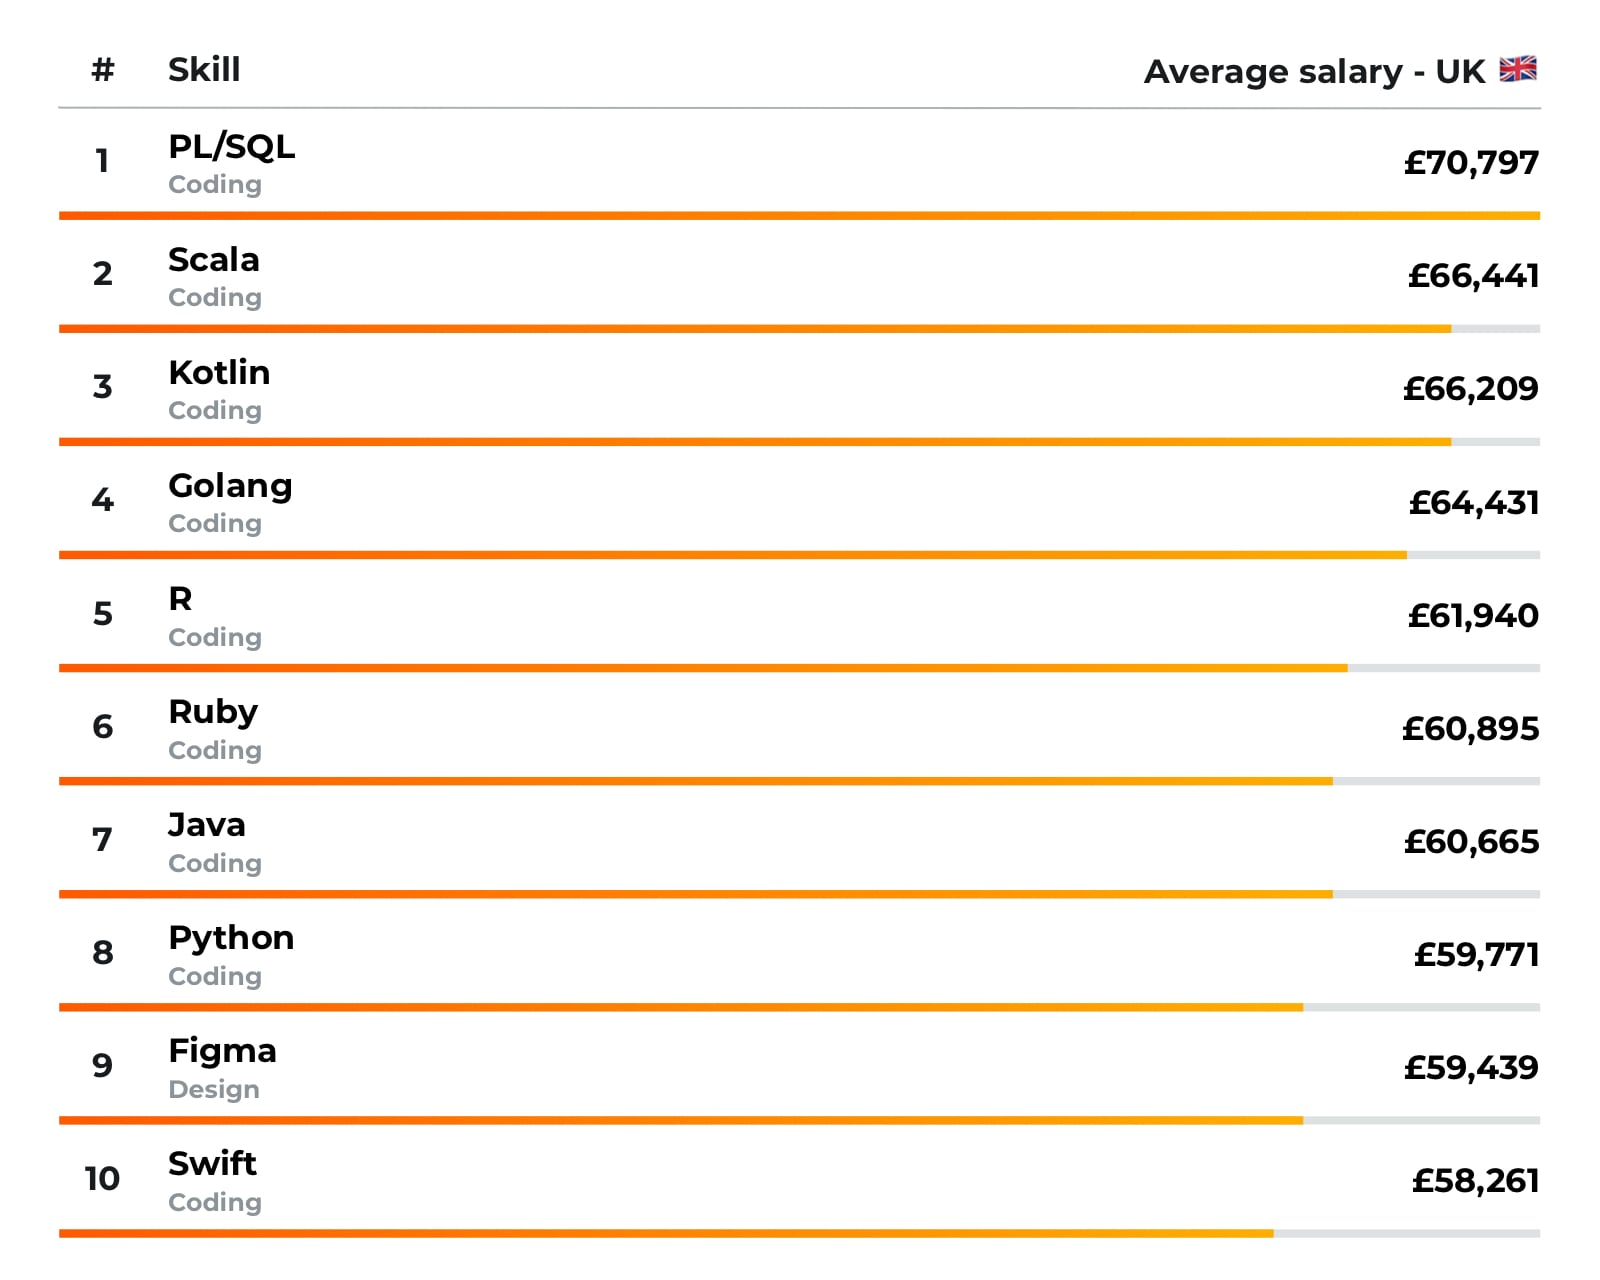 Infographic showing the highest-earning skills in the UK.